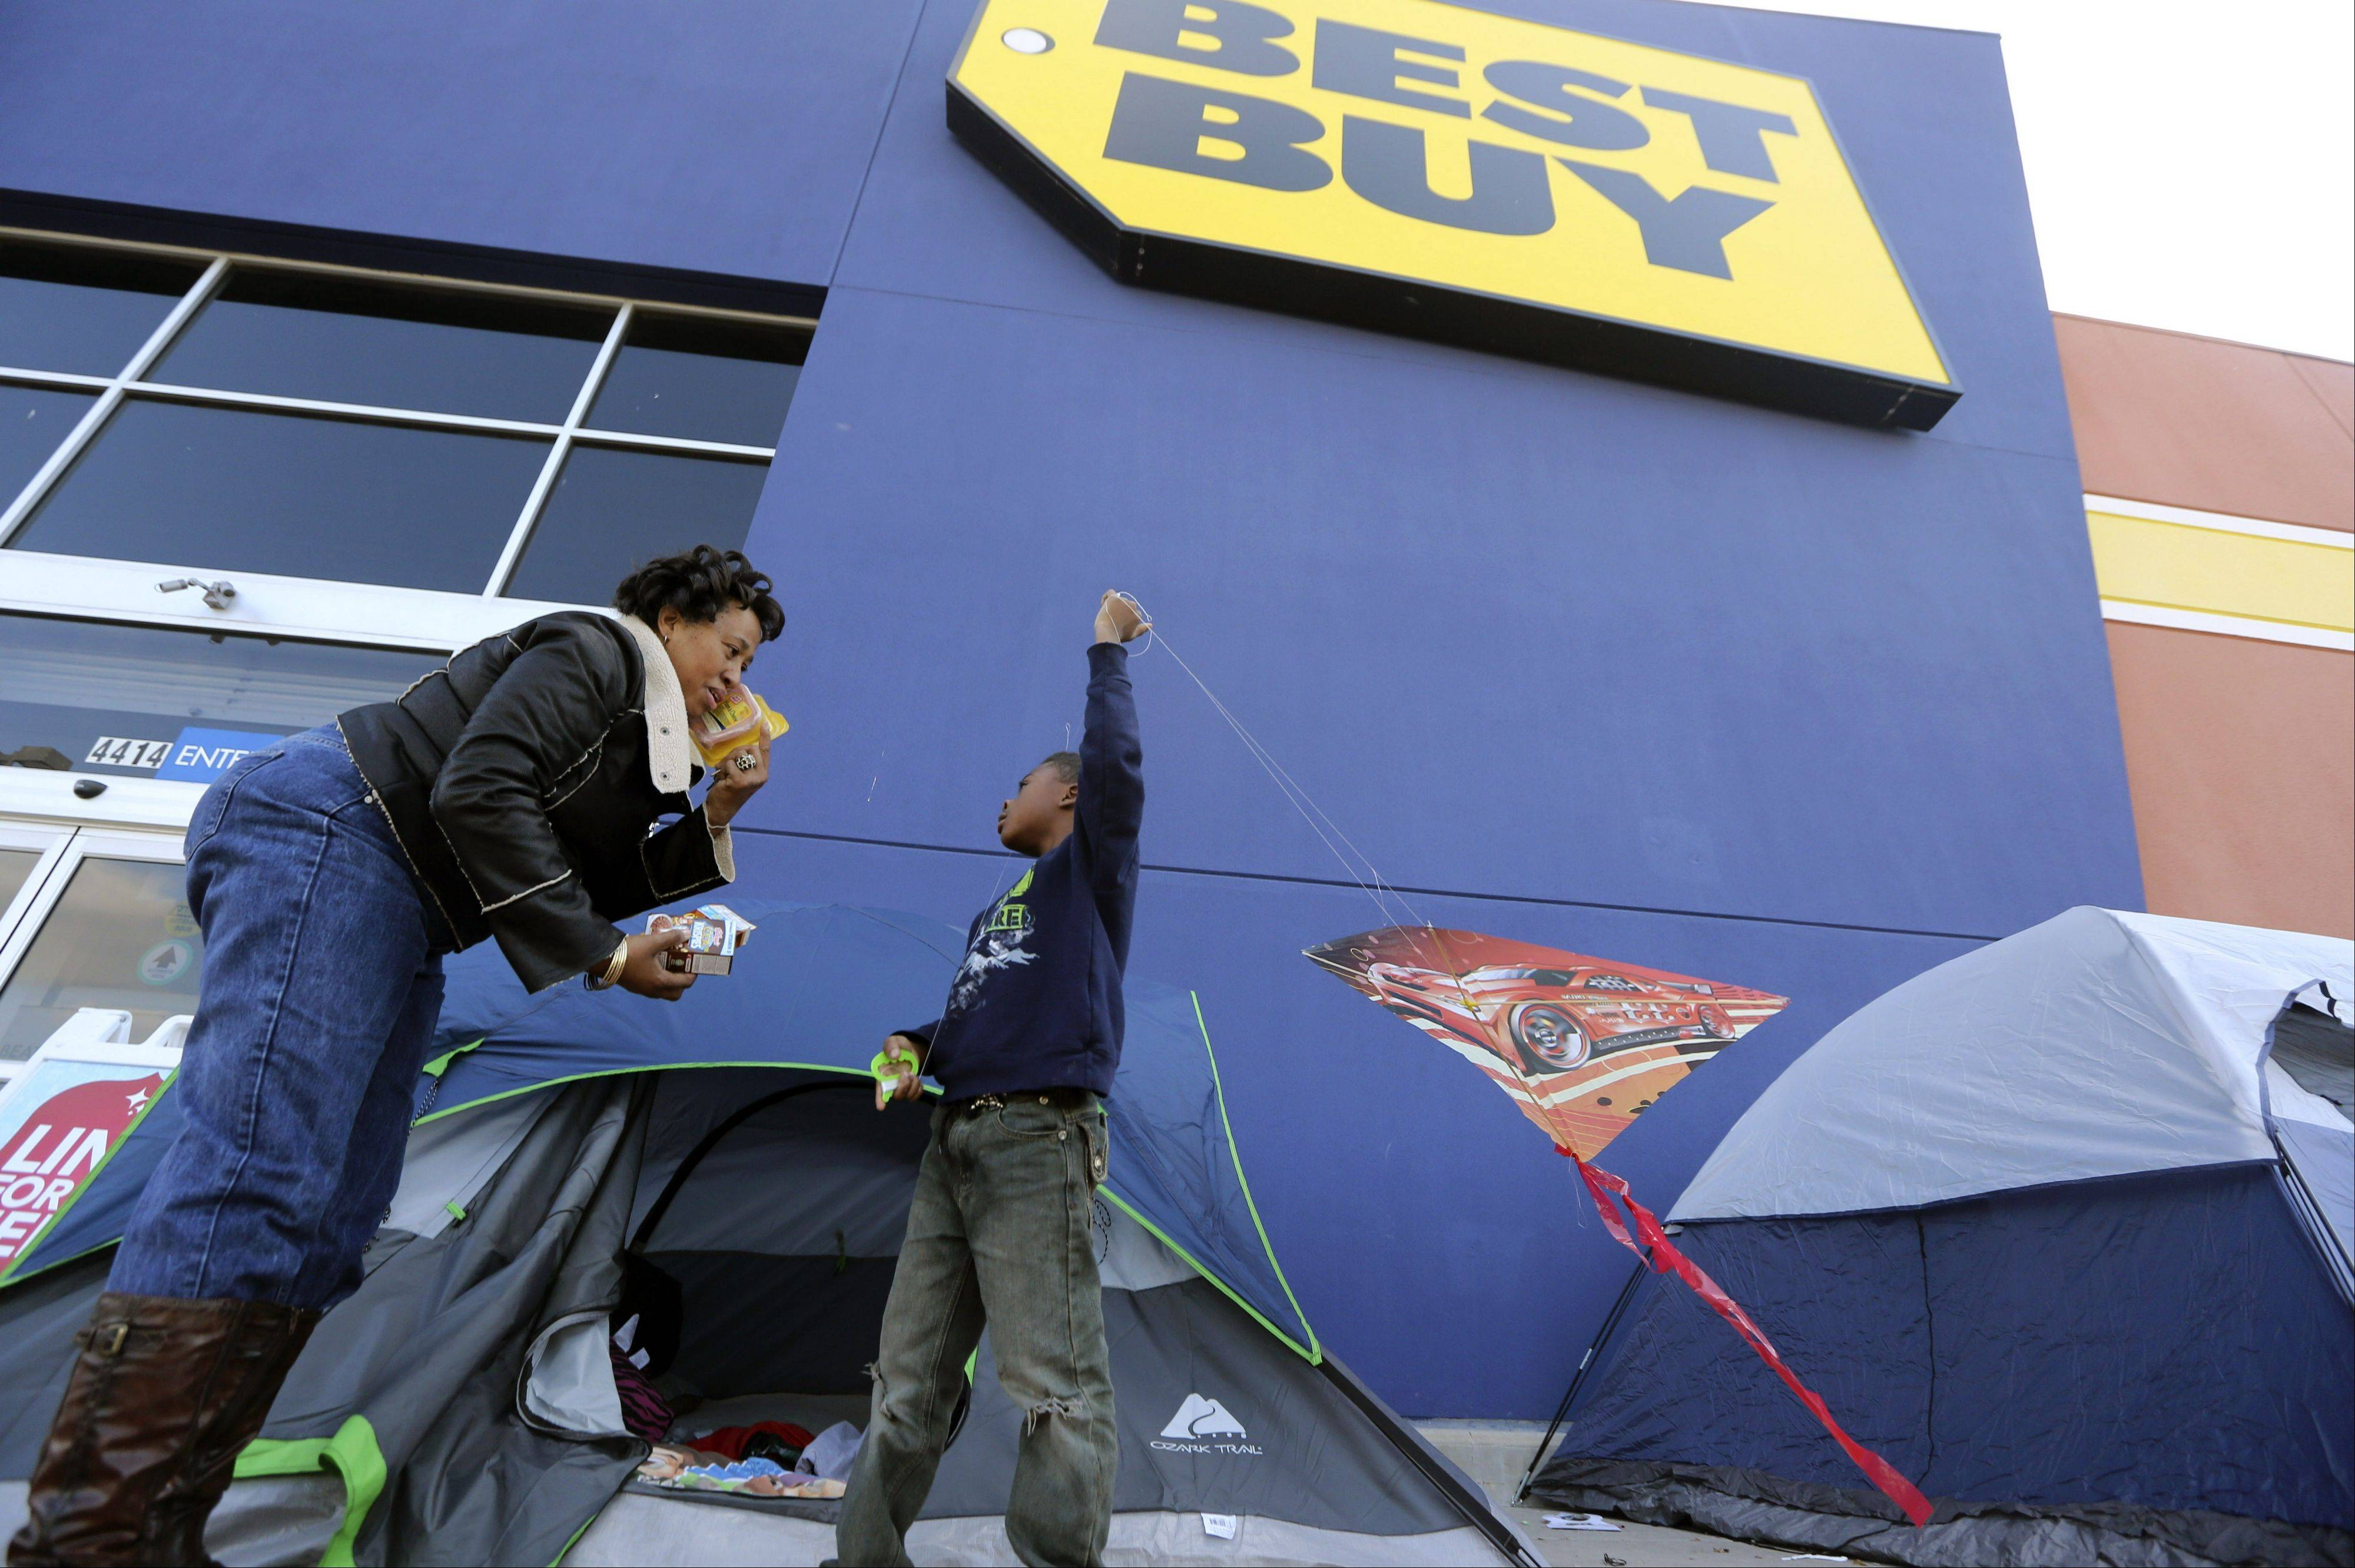 Best Buy Co. reported another dismal quarter on Tuesday, Nov. 20, 2012, recording a loss in the third quarter, hurt by a continued sales slump and charges related to restructuring.